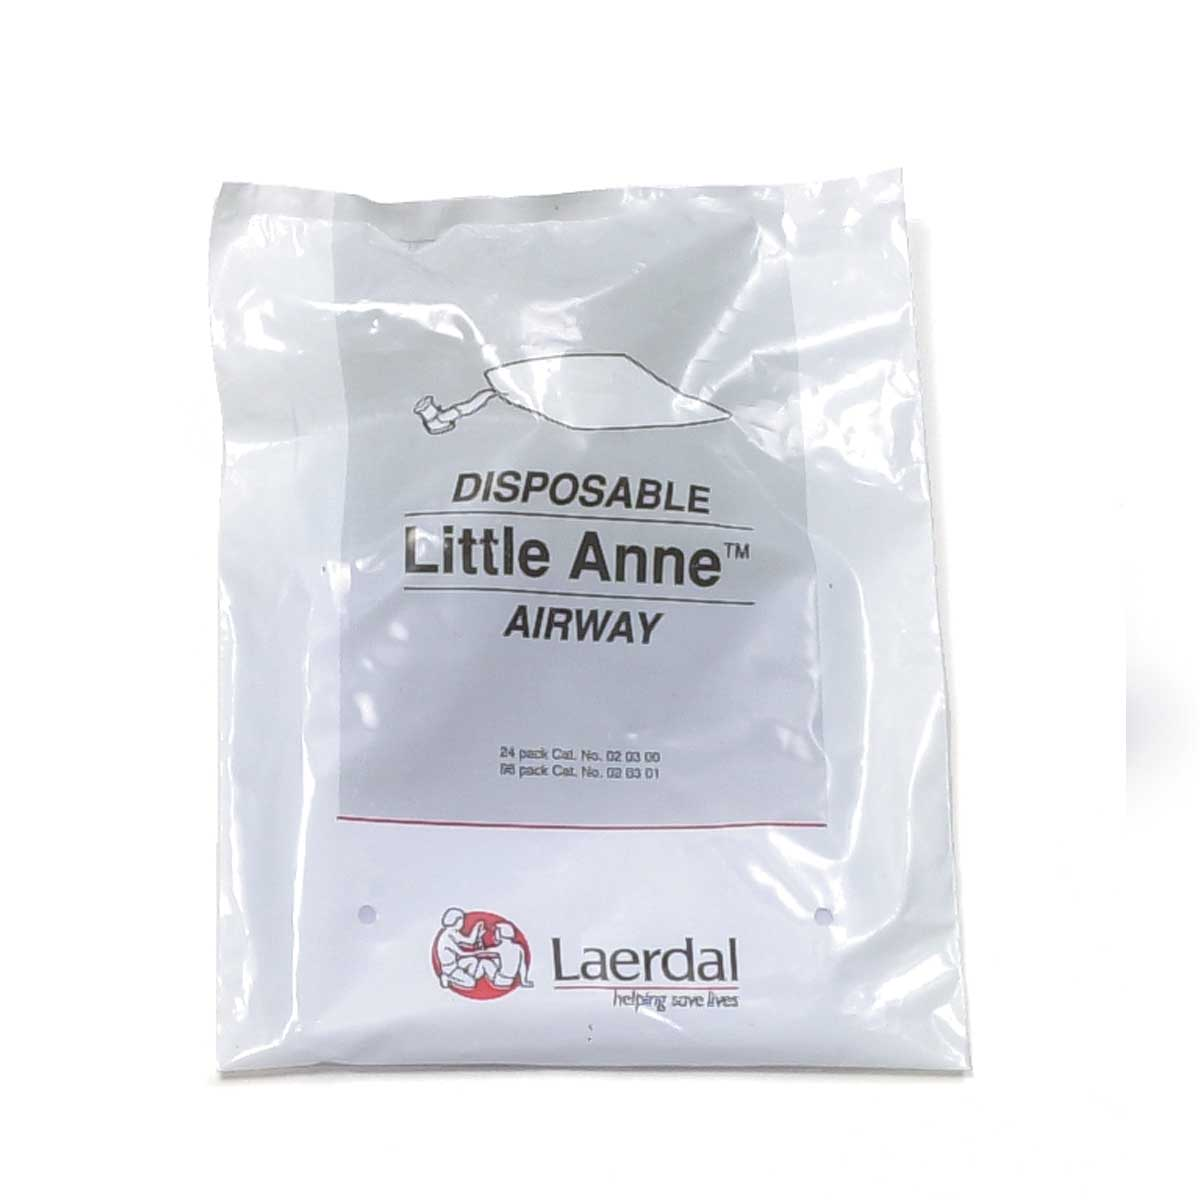 Pack of 96 Laerdal Little Anne™ Disposable Airways